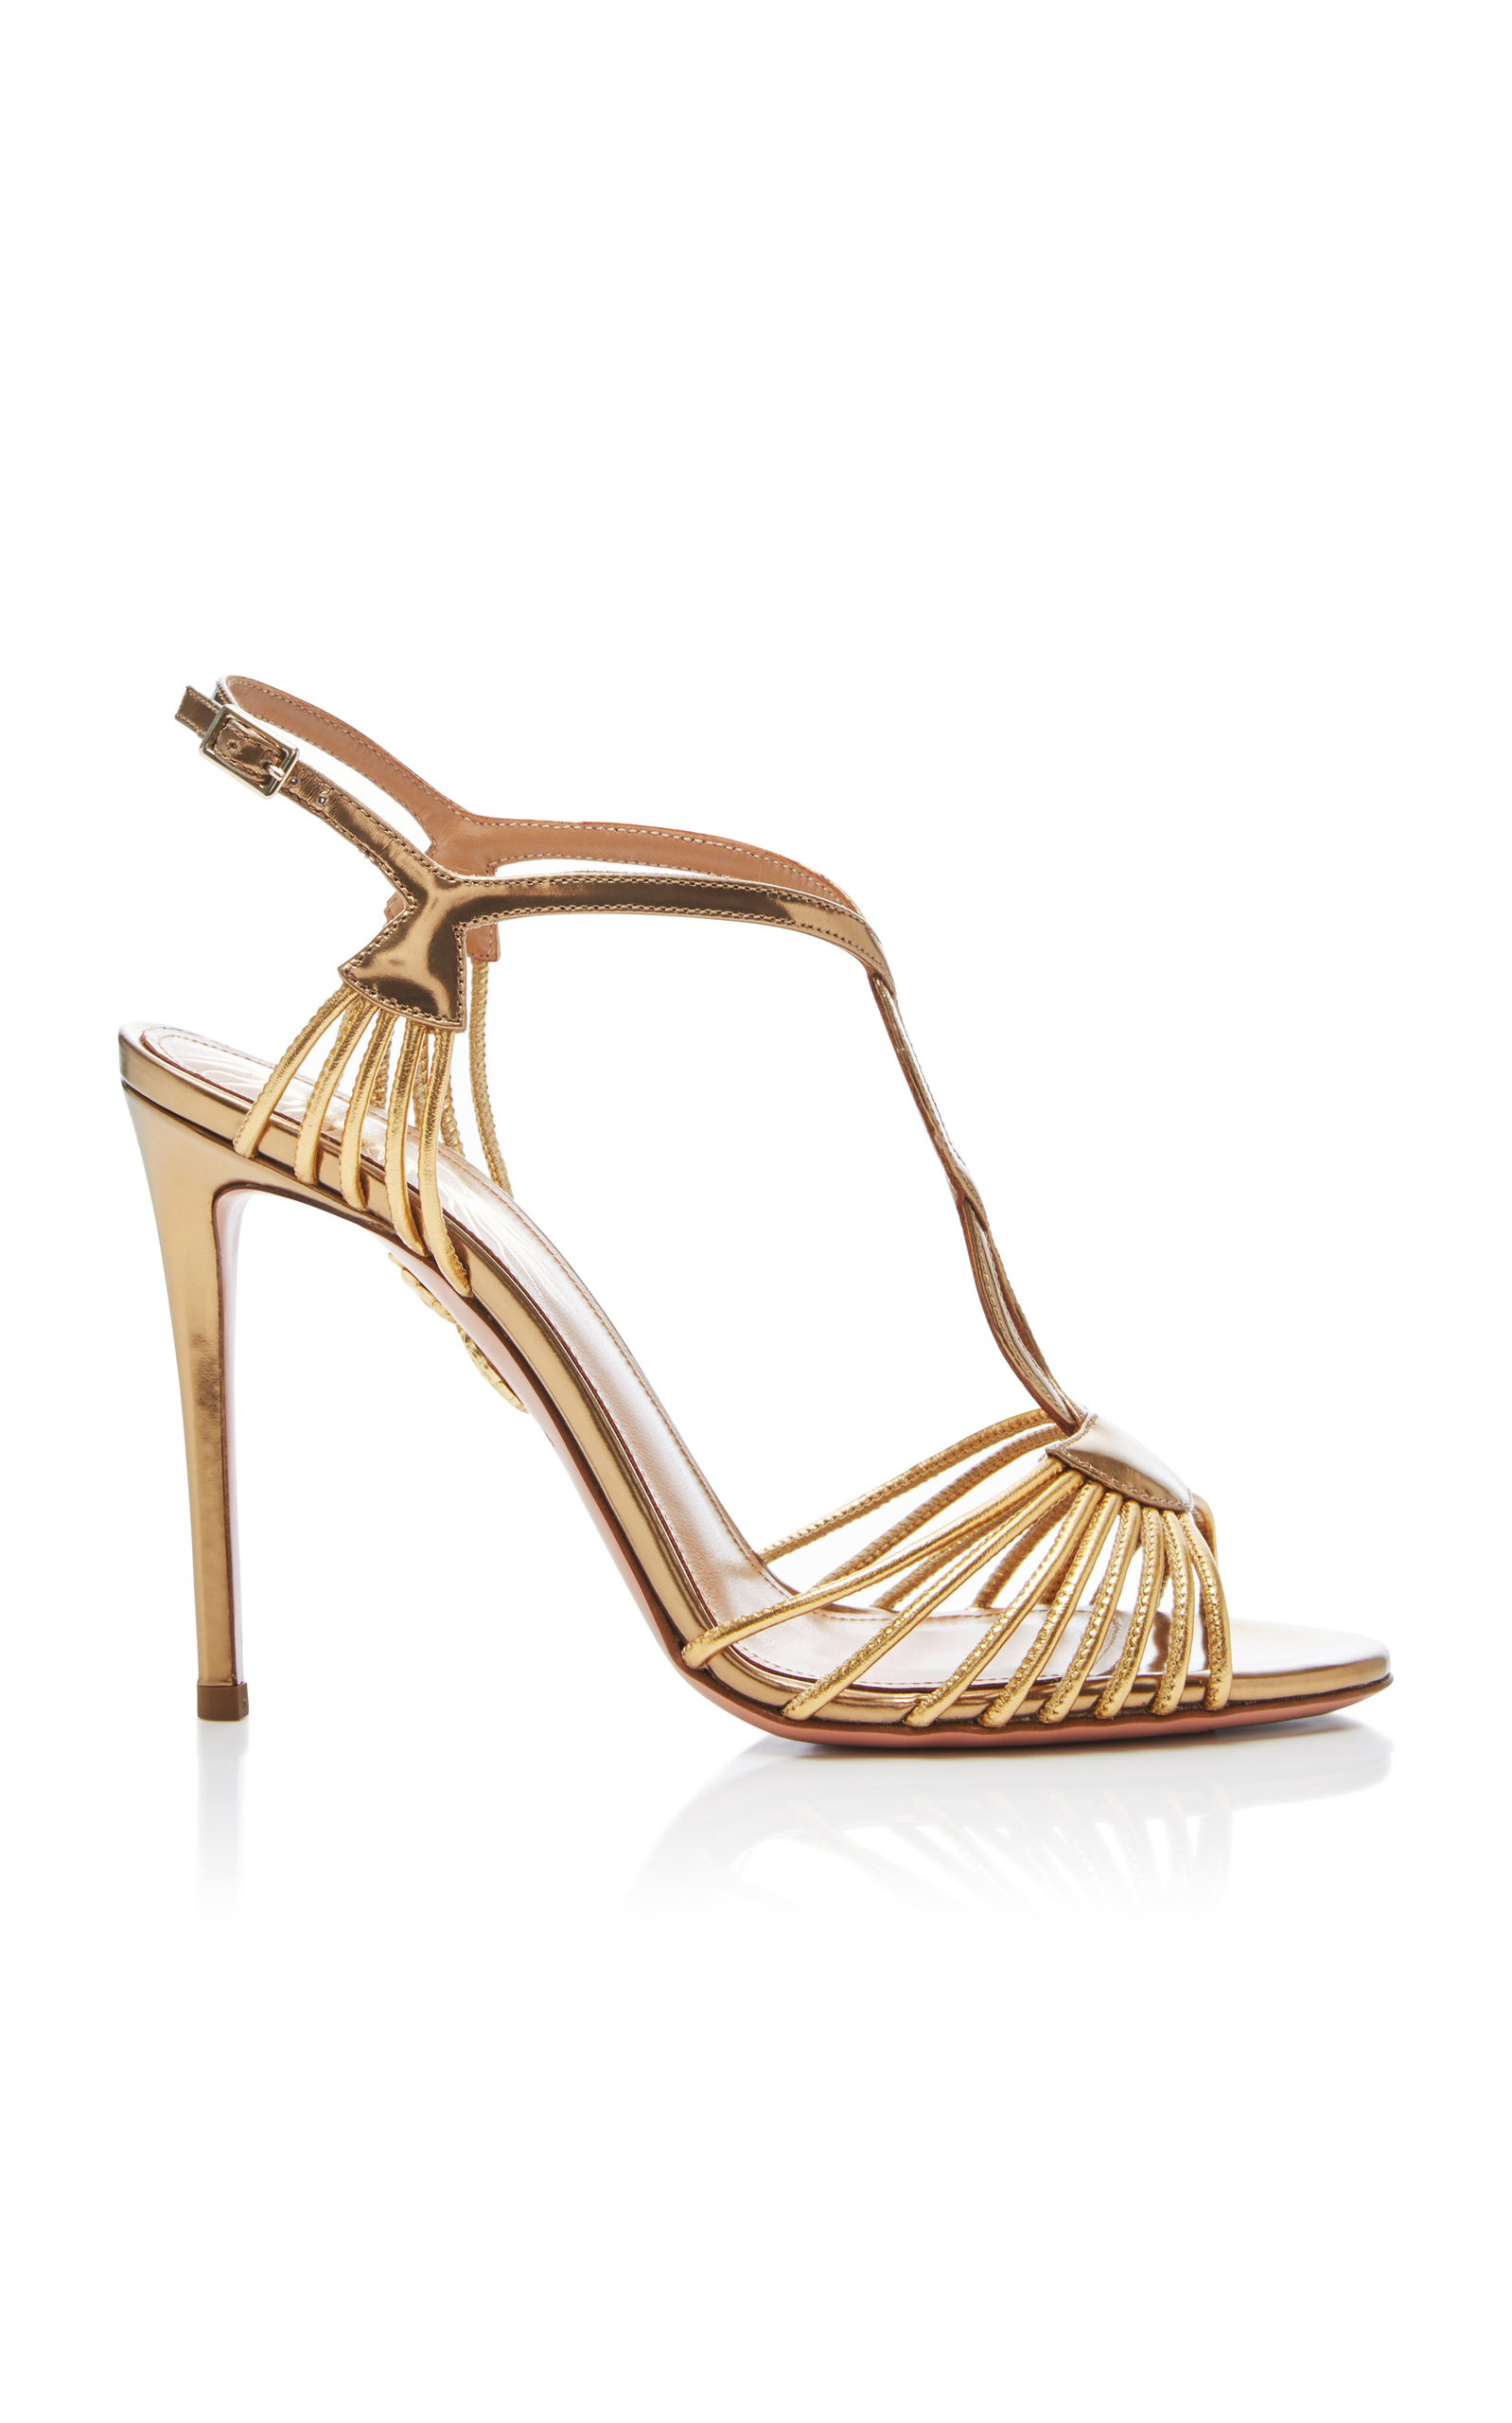 Metallic leather sandals Aquazzura fcXM52GRB